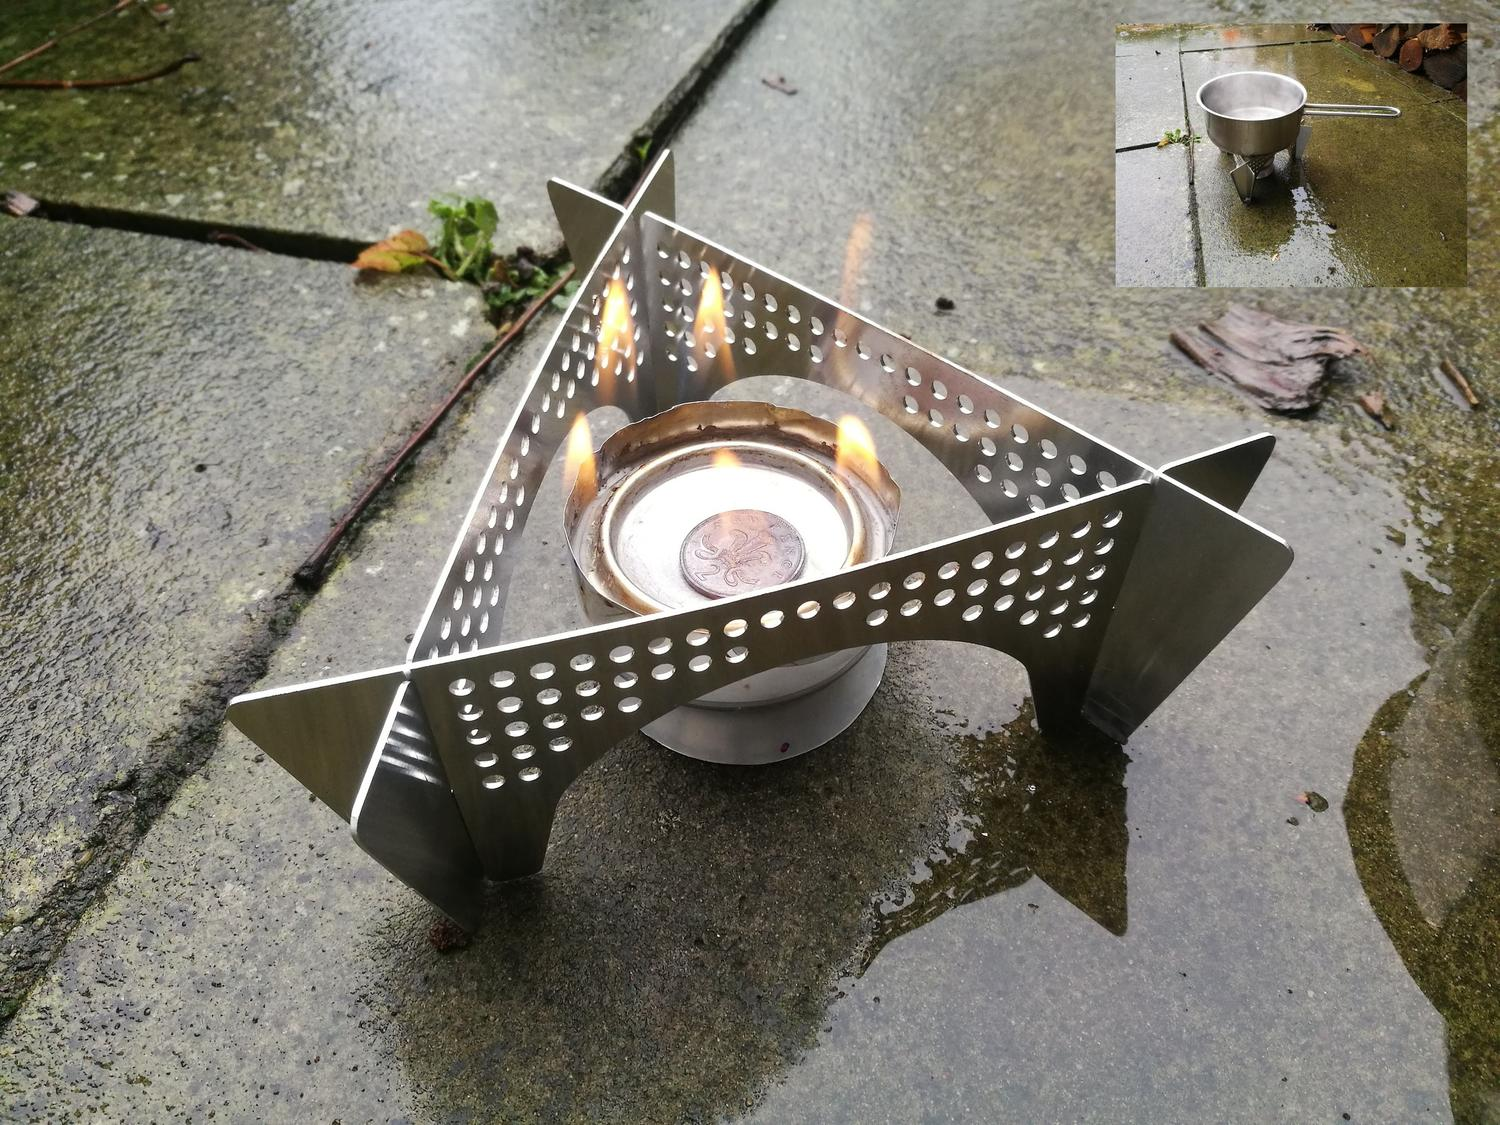 Laser Cut Stove Support Stand Base And Wind Shield For Outdoor Camping Free DXF File